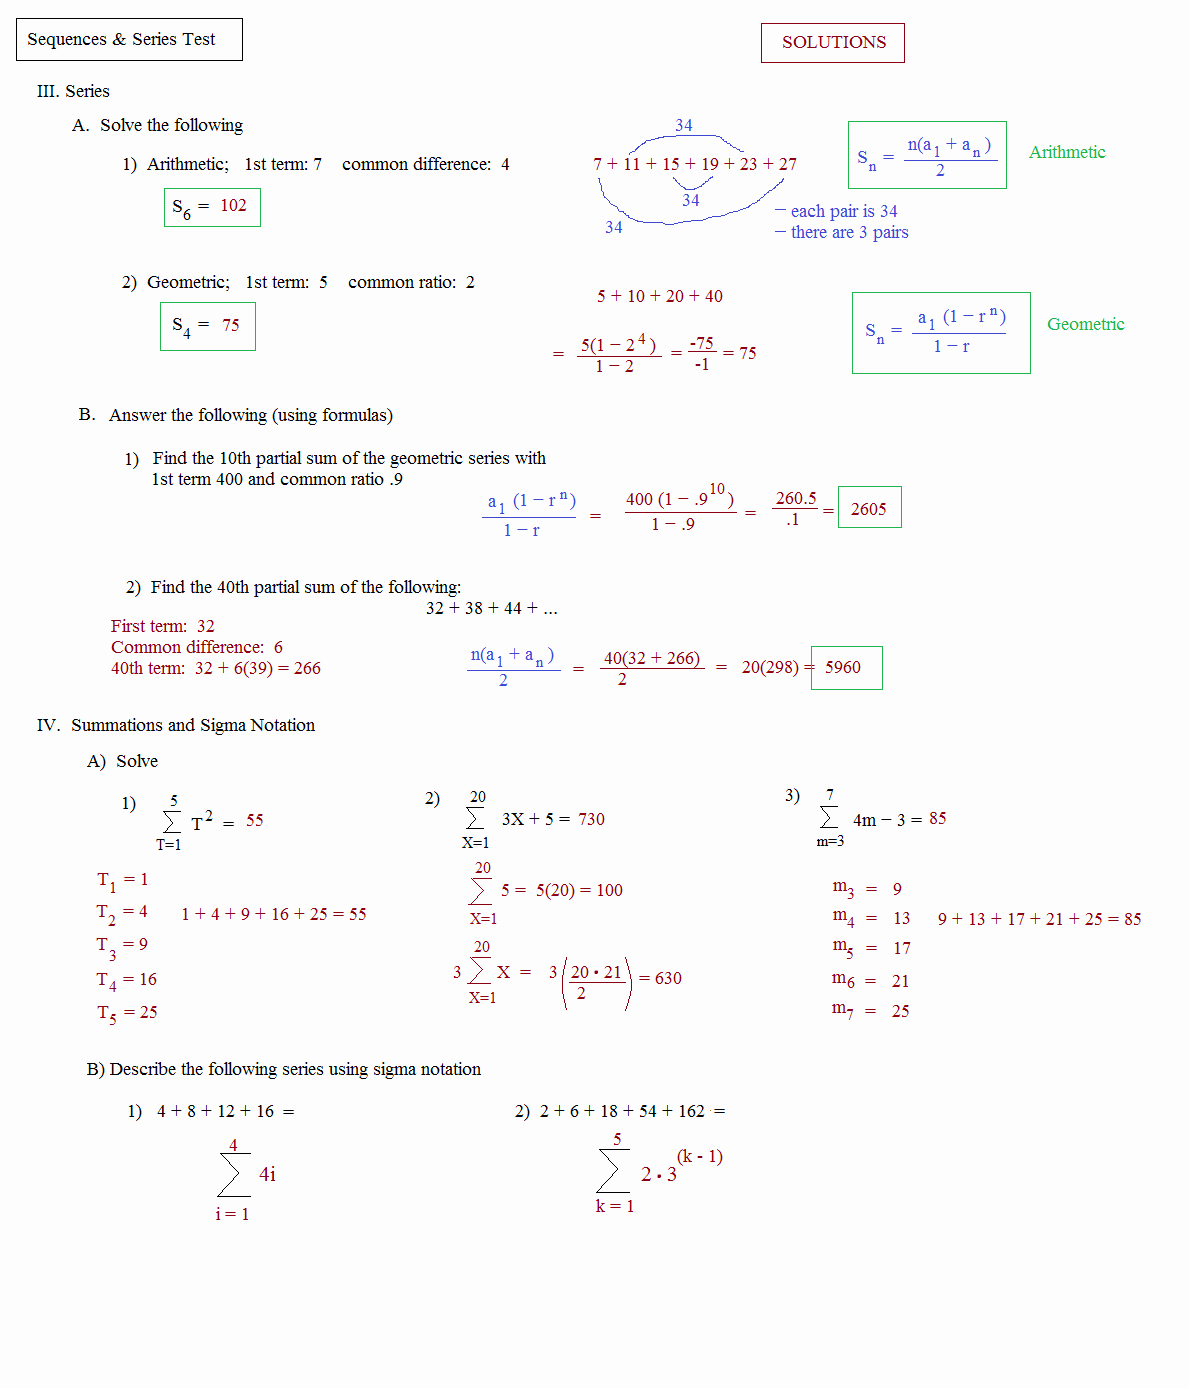 Sequences and Series Worksheet Answers Luxury Math Plane Sequences and Series I